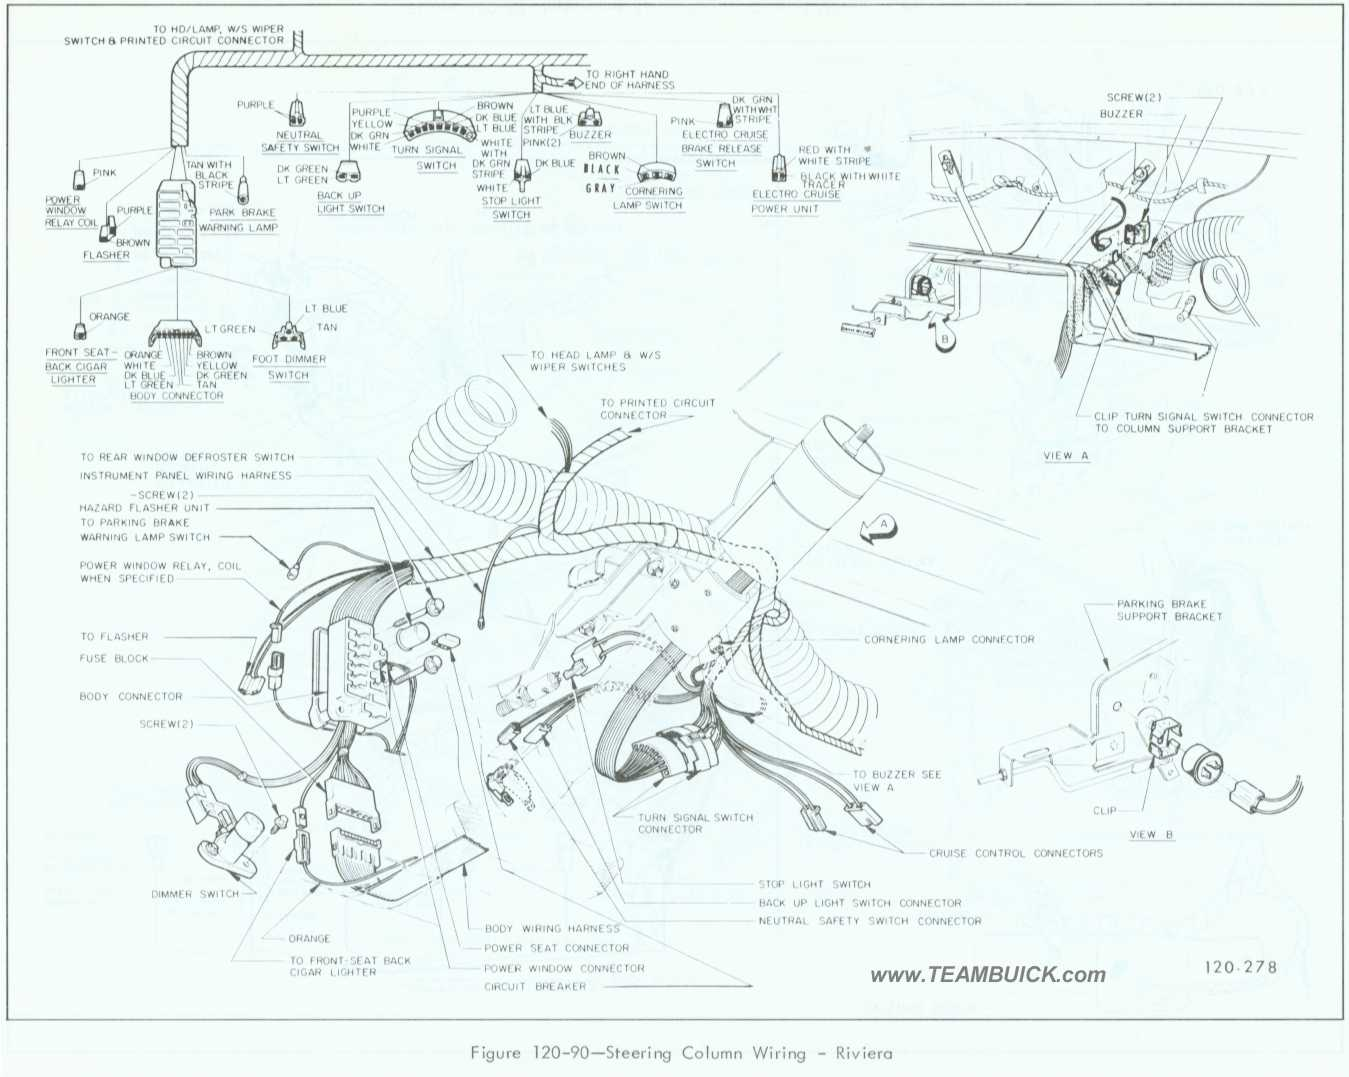 1995 Buick Riviera Wiring Diagram Flasher Not Working